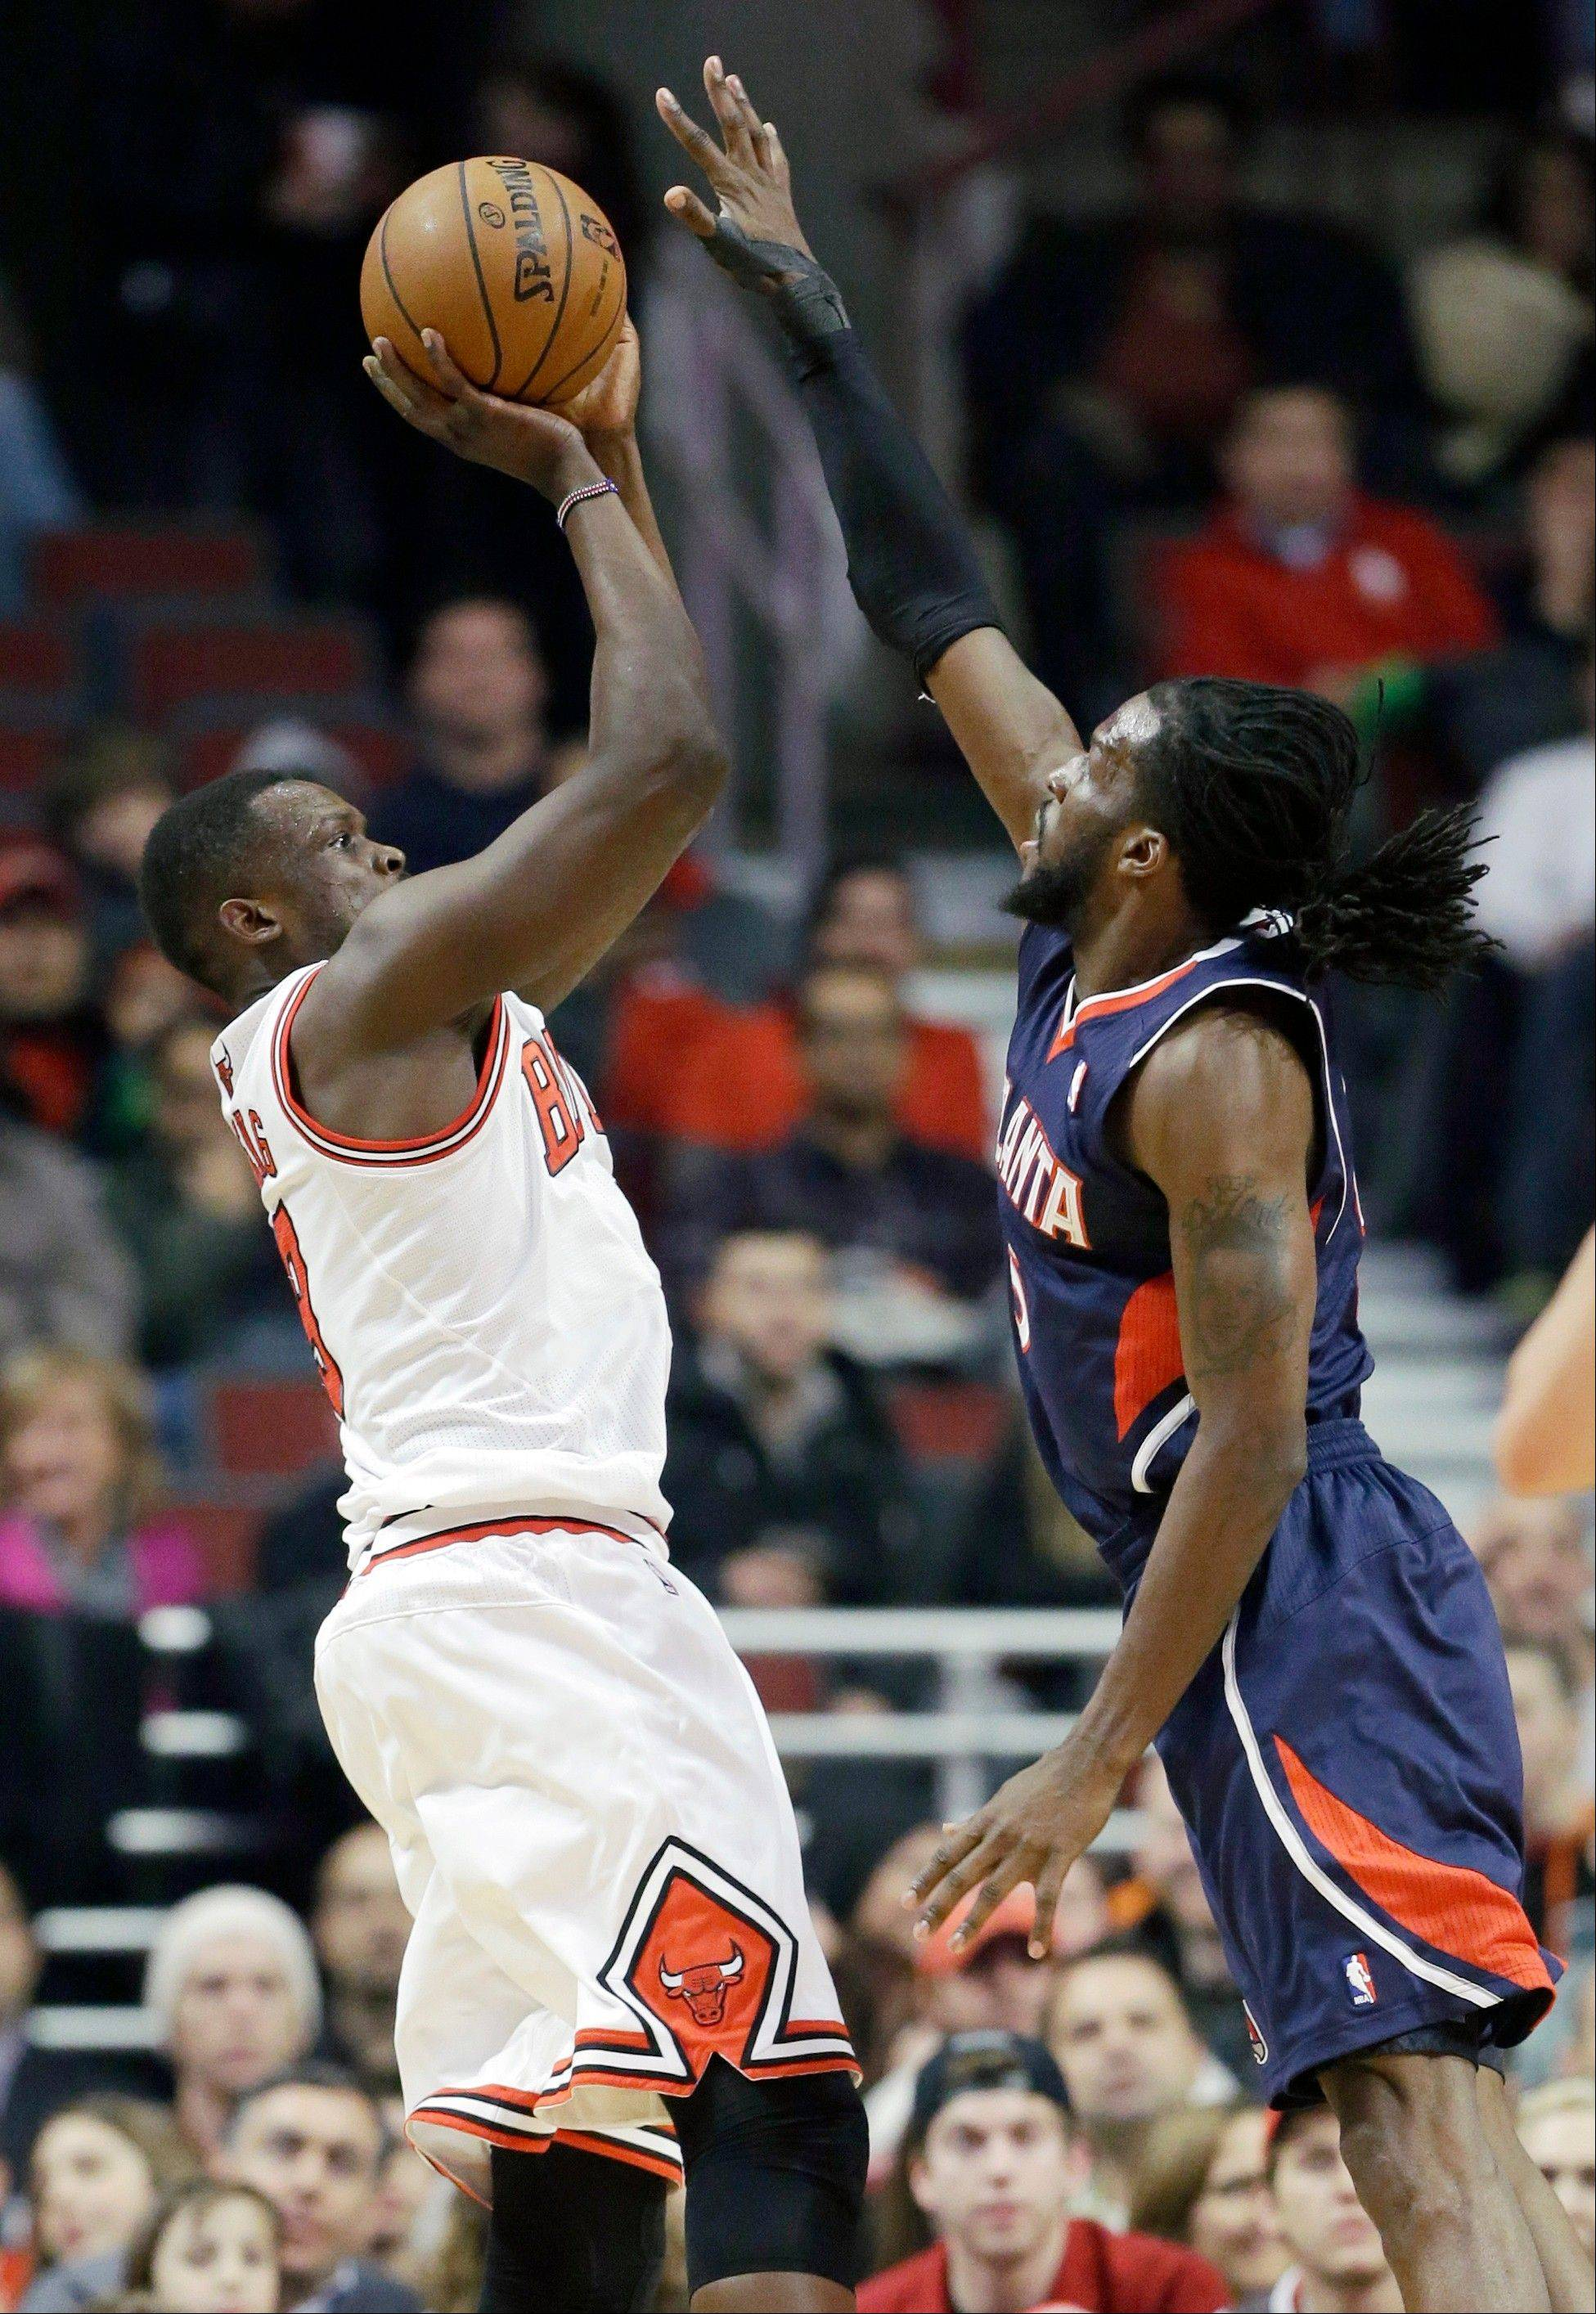 Bulls forward Luol Deng, left, shoots over Atlanta Hawks forward DeMarre Carroll during Saturday night's game at the United Center. Deng scored 17 points in the Bulls' 91-84 win over the Atlanta Hawks.